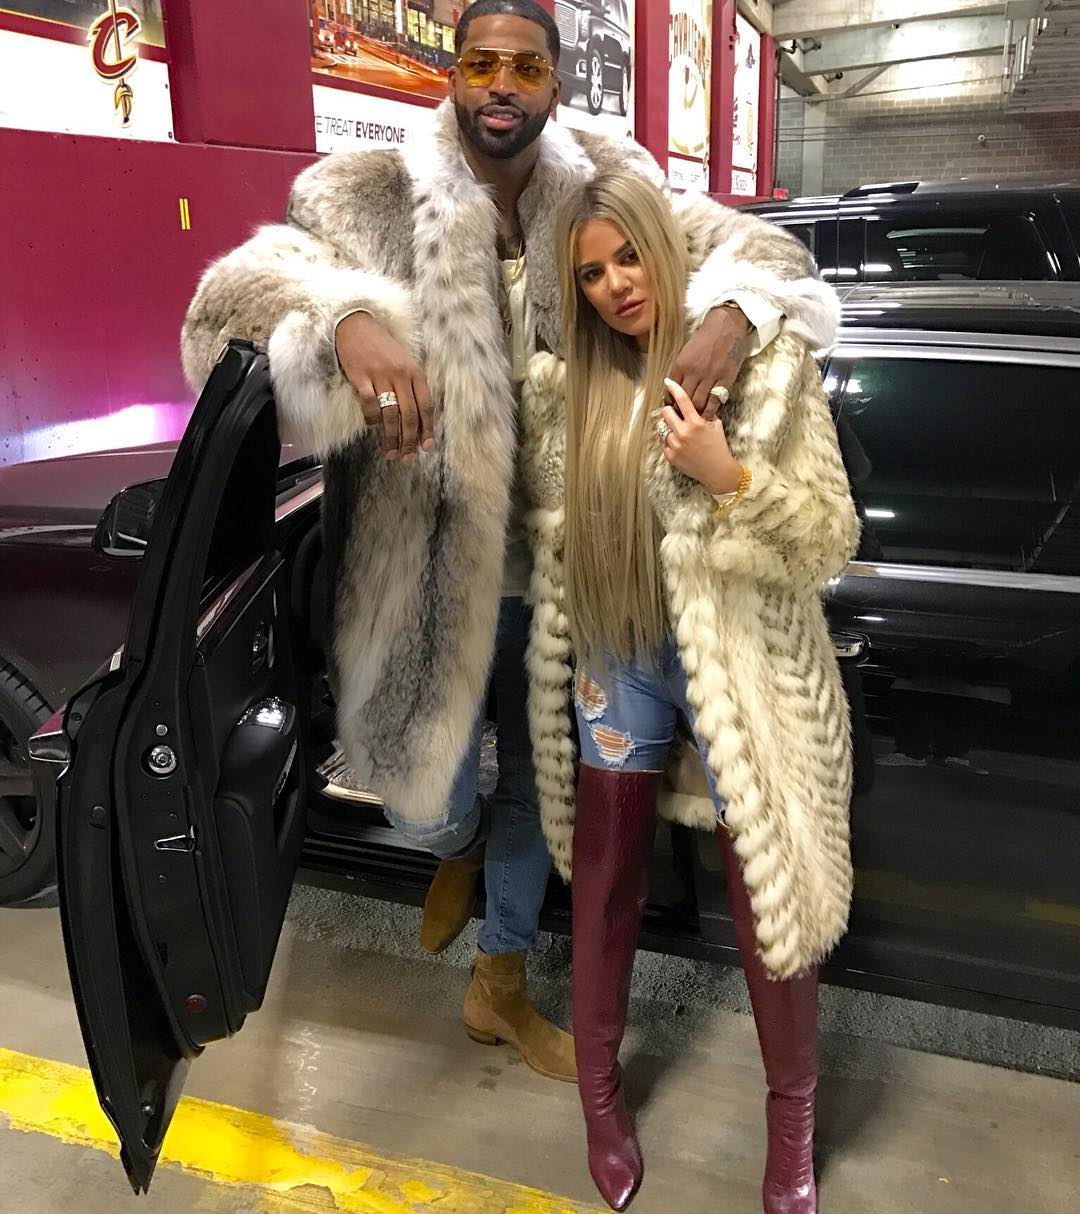 SPOTTED: Tristan Thompson Post Game In Fur Coat and Saint Laurent Boots